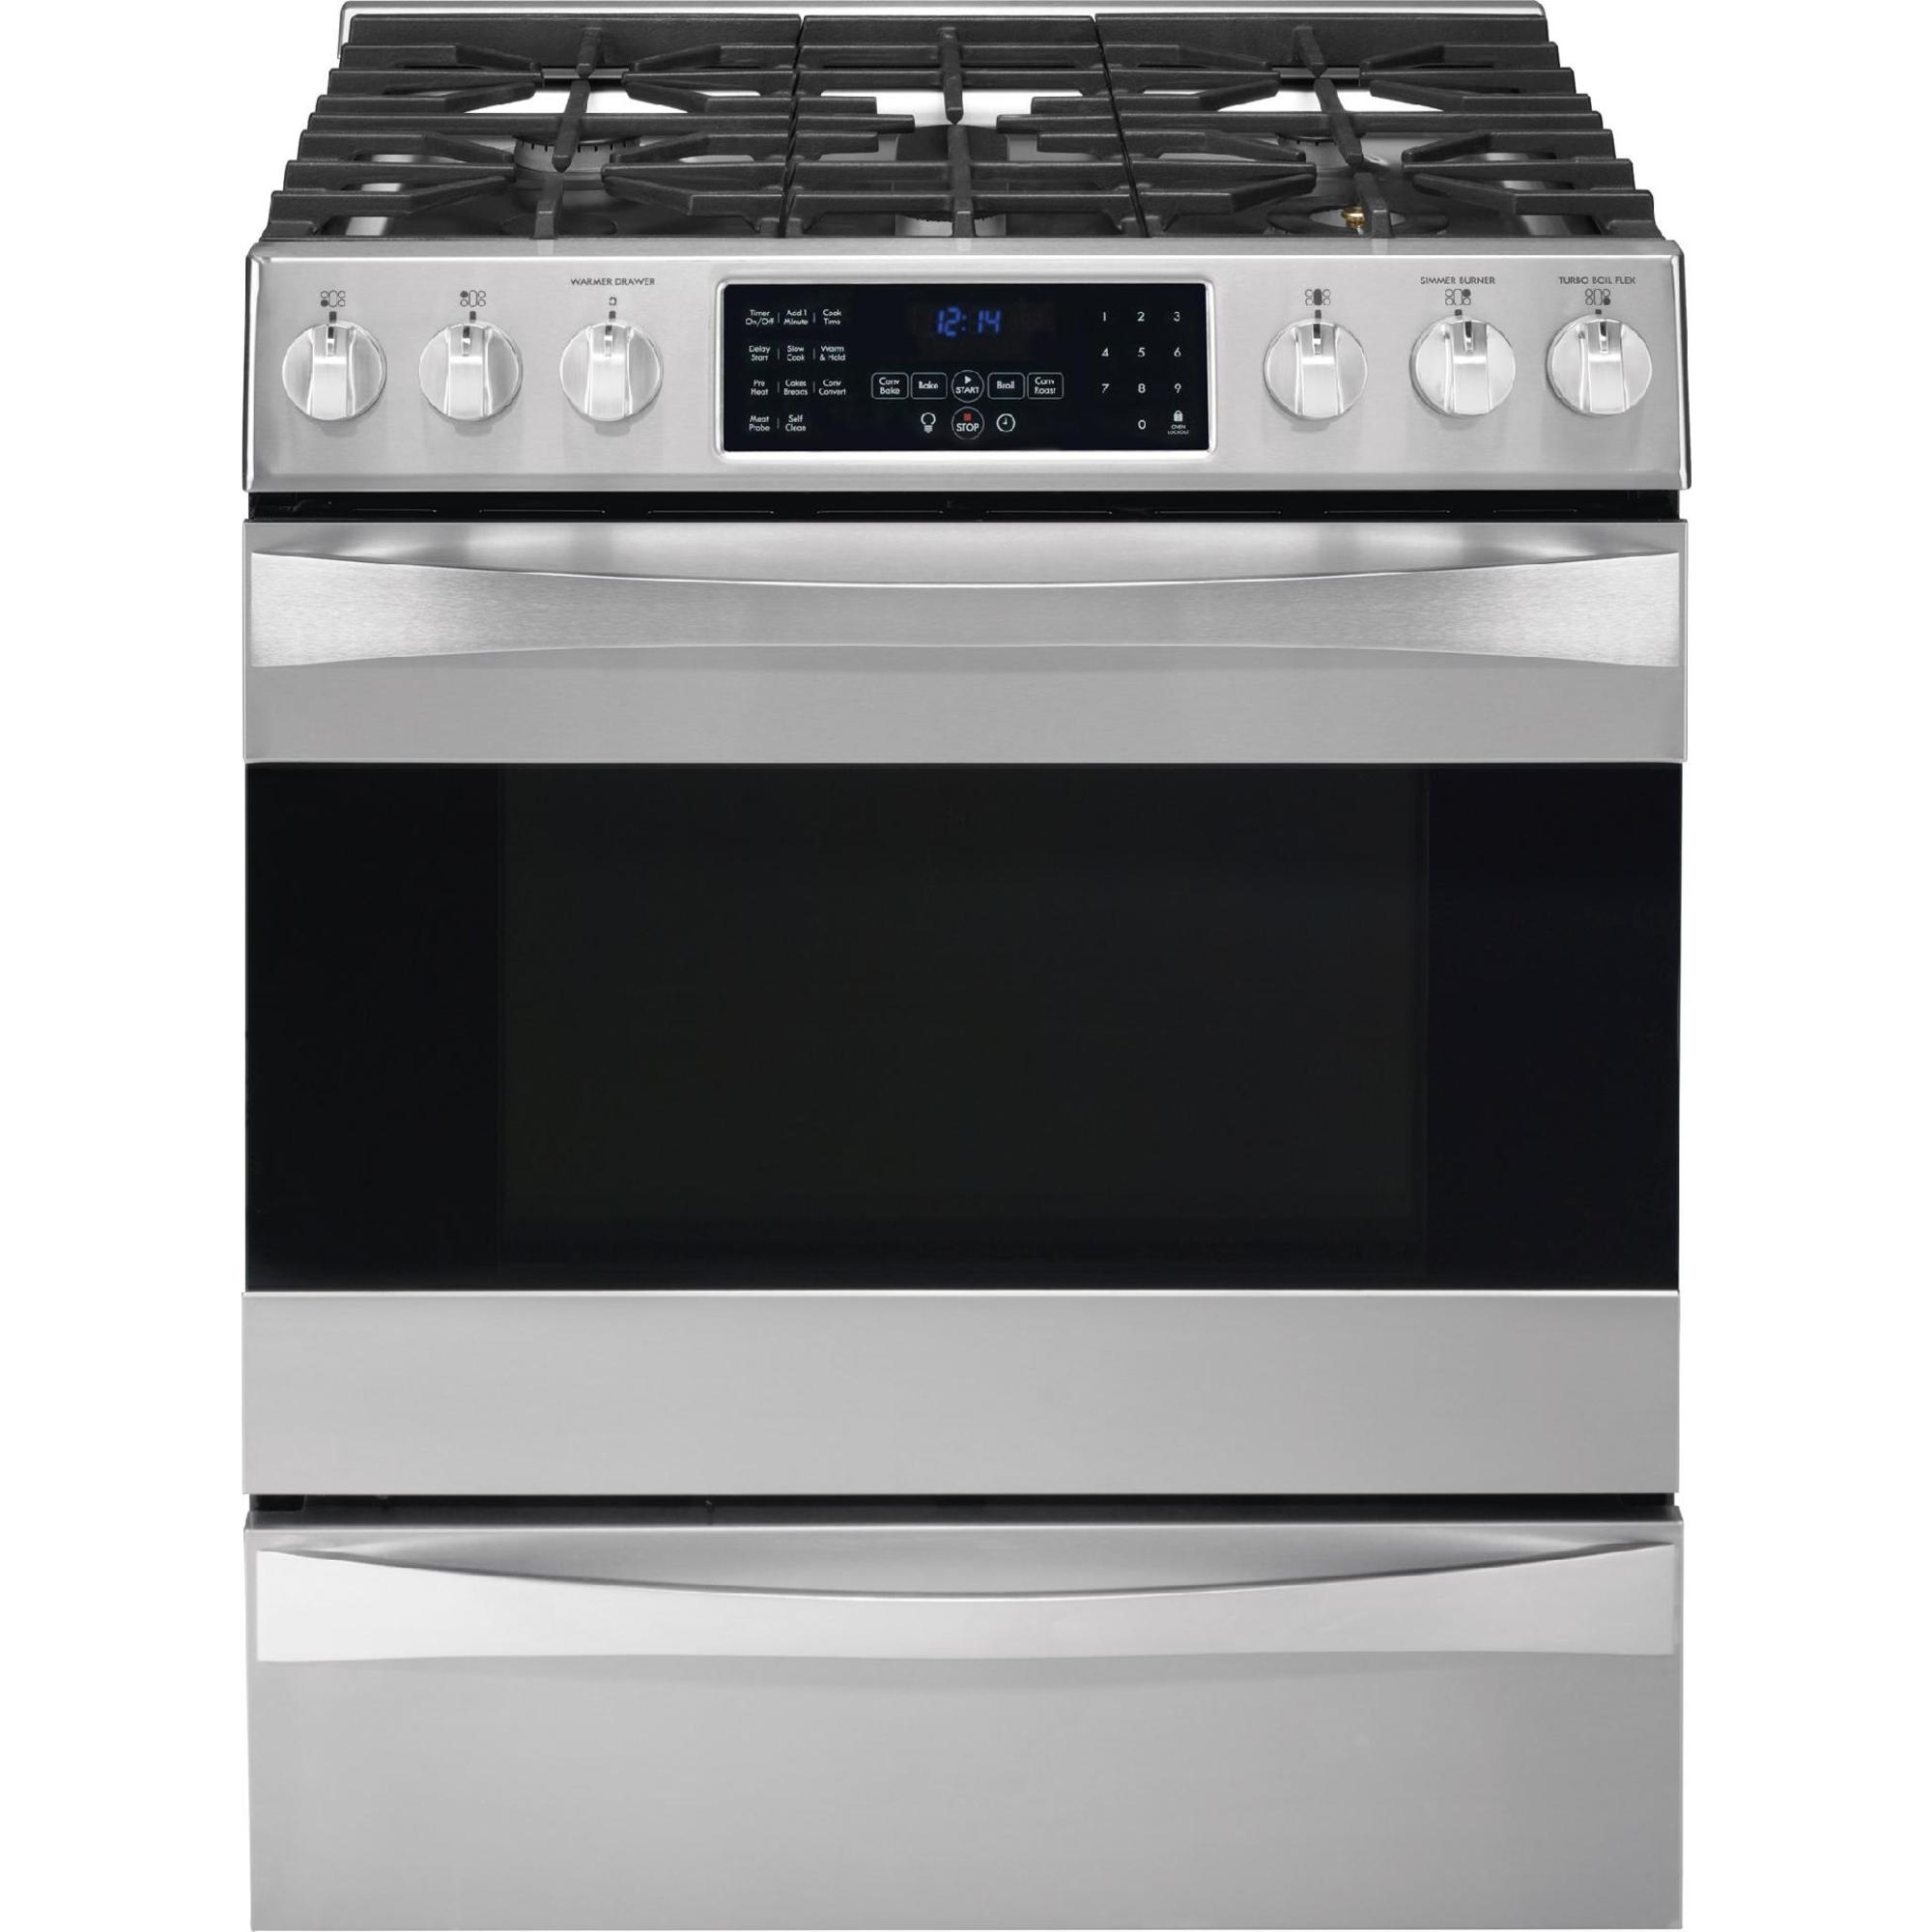 Kenmore-Elite-32363-4-5-cu-ft-Gas-Range-w-True-Convection-Stainless-Steel